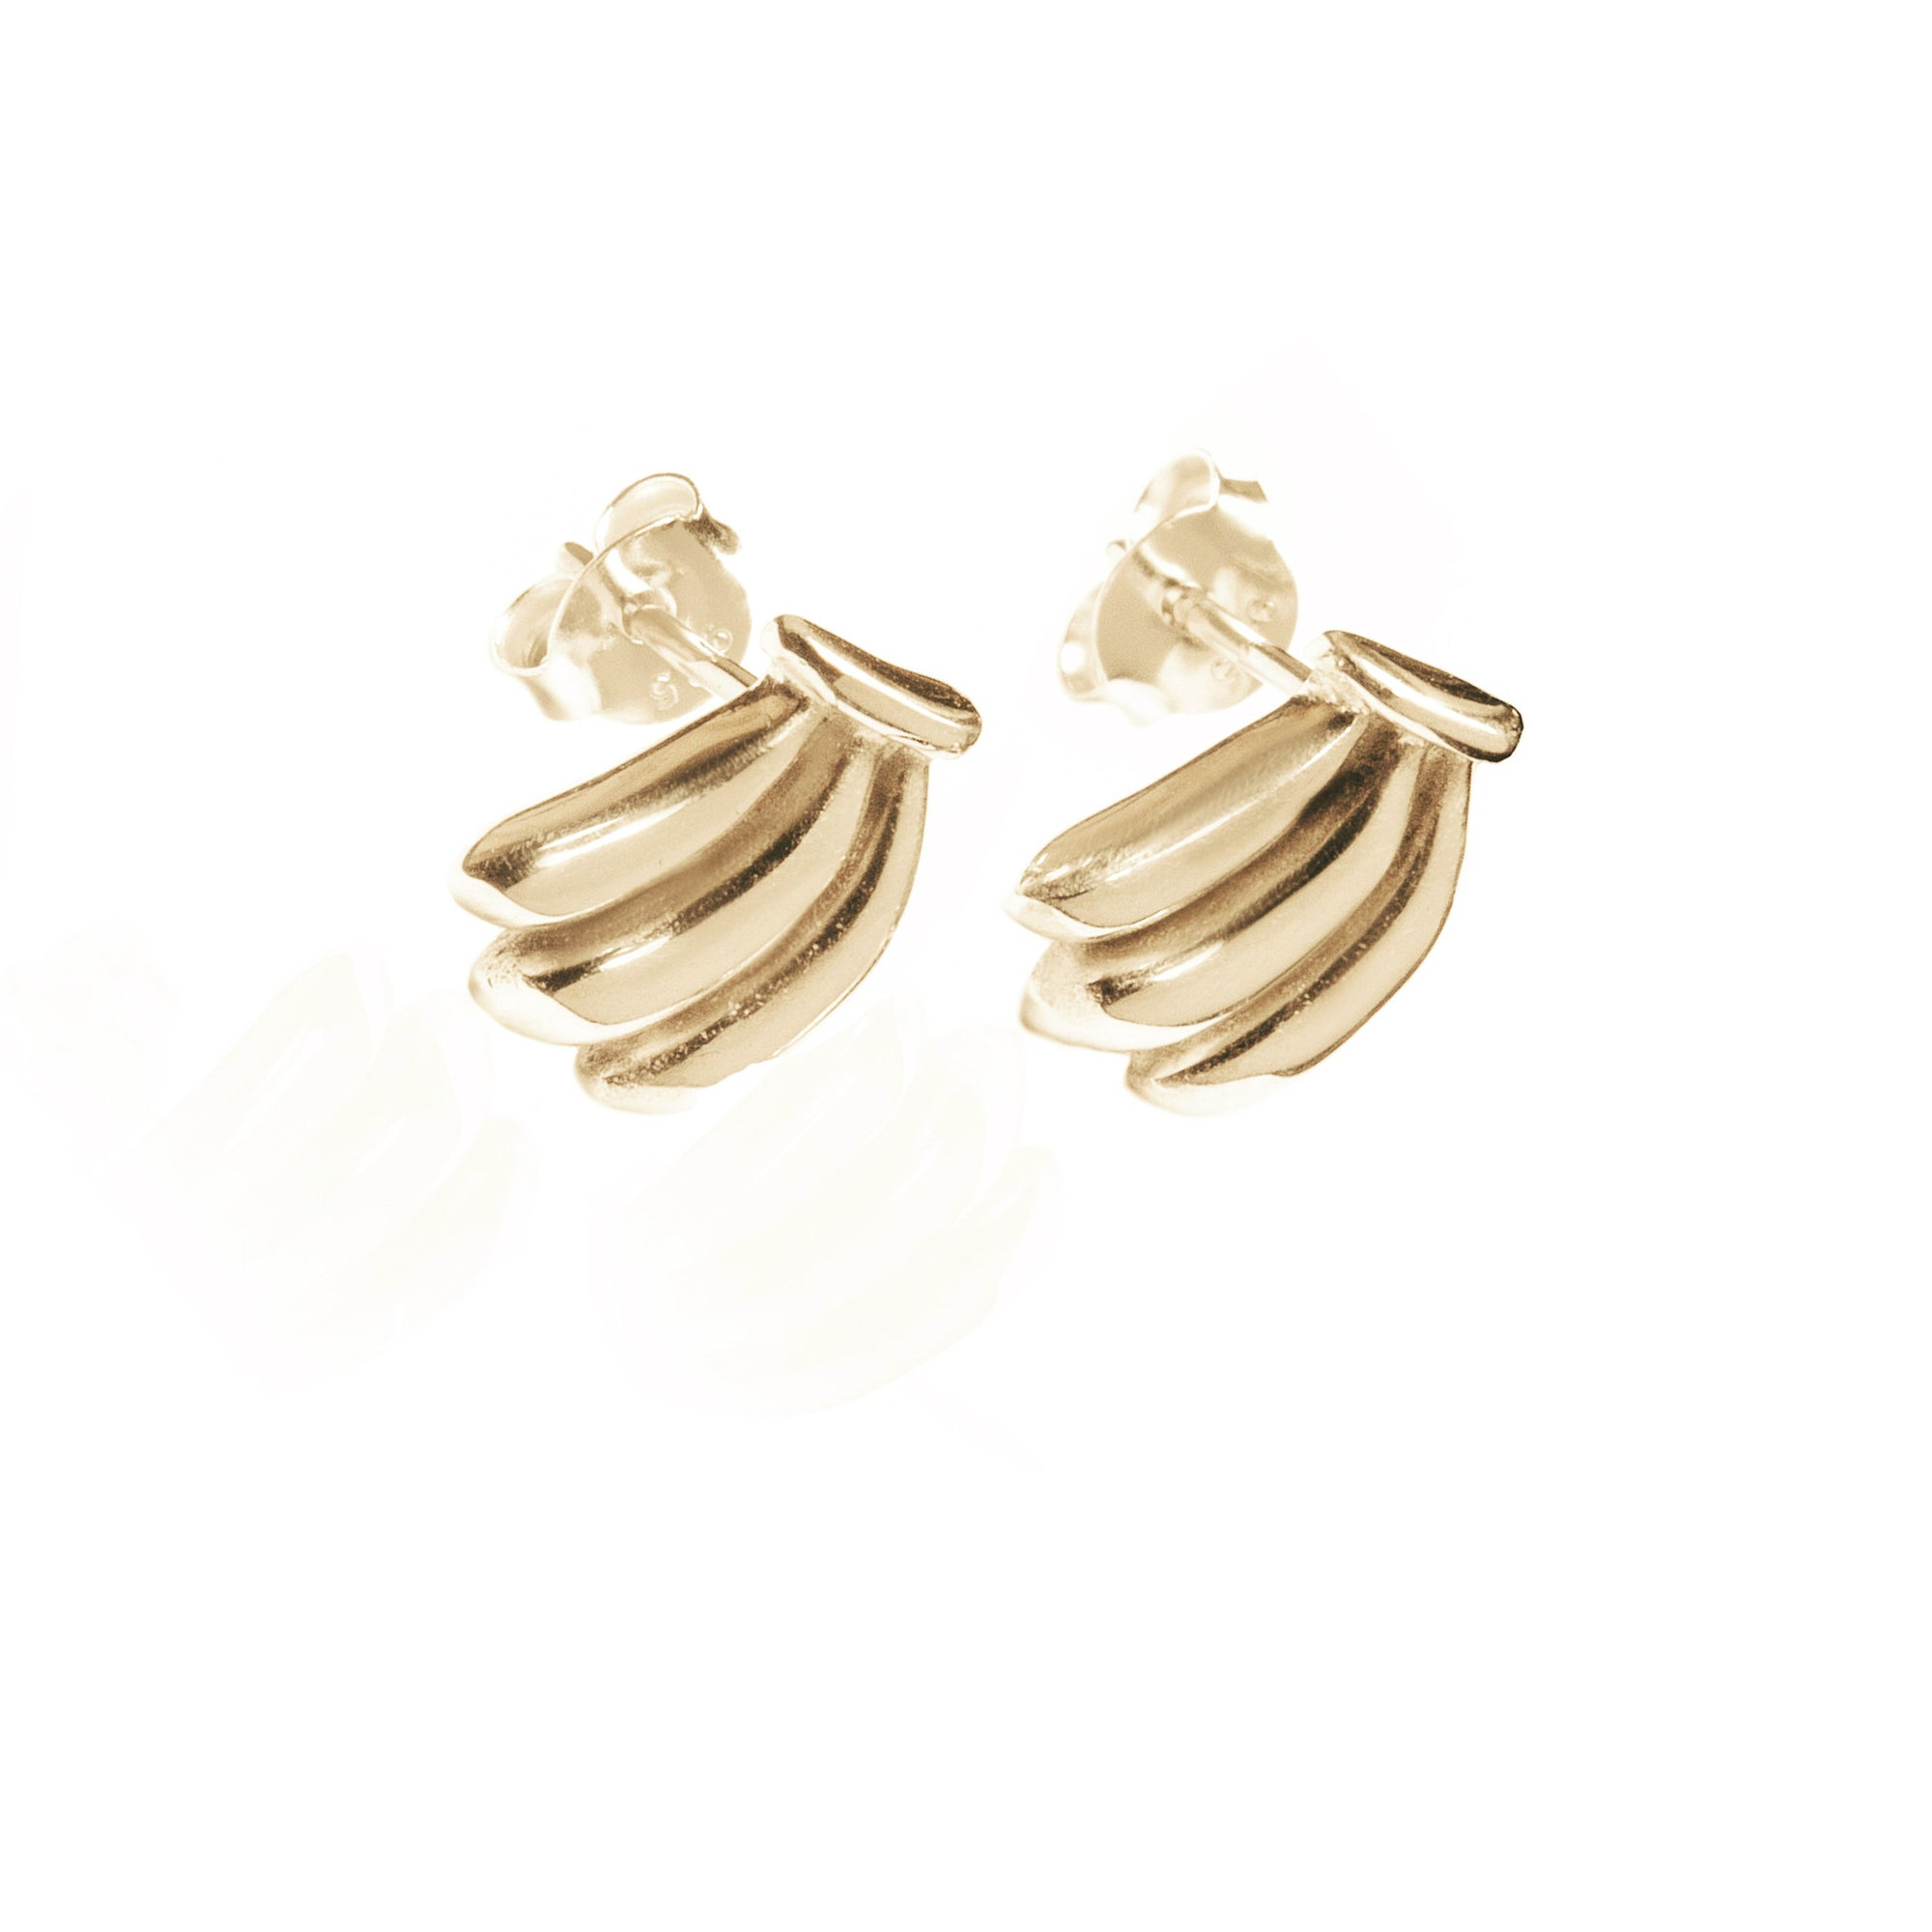 La Luna Rose Jewellery - You Drive me Bananas Earrings - Gold